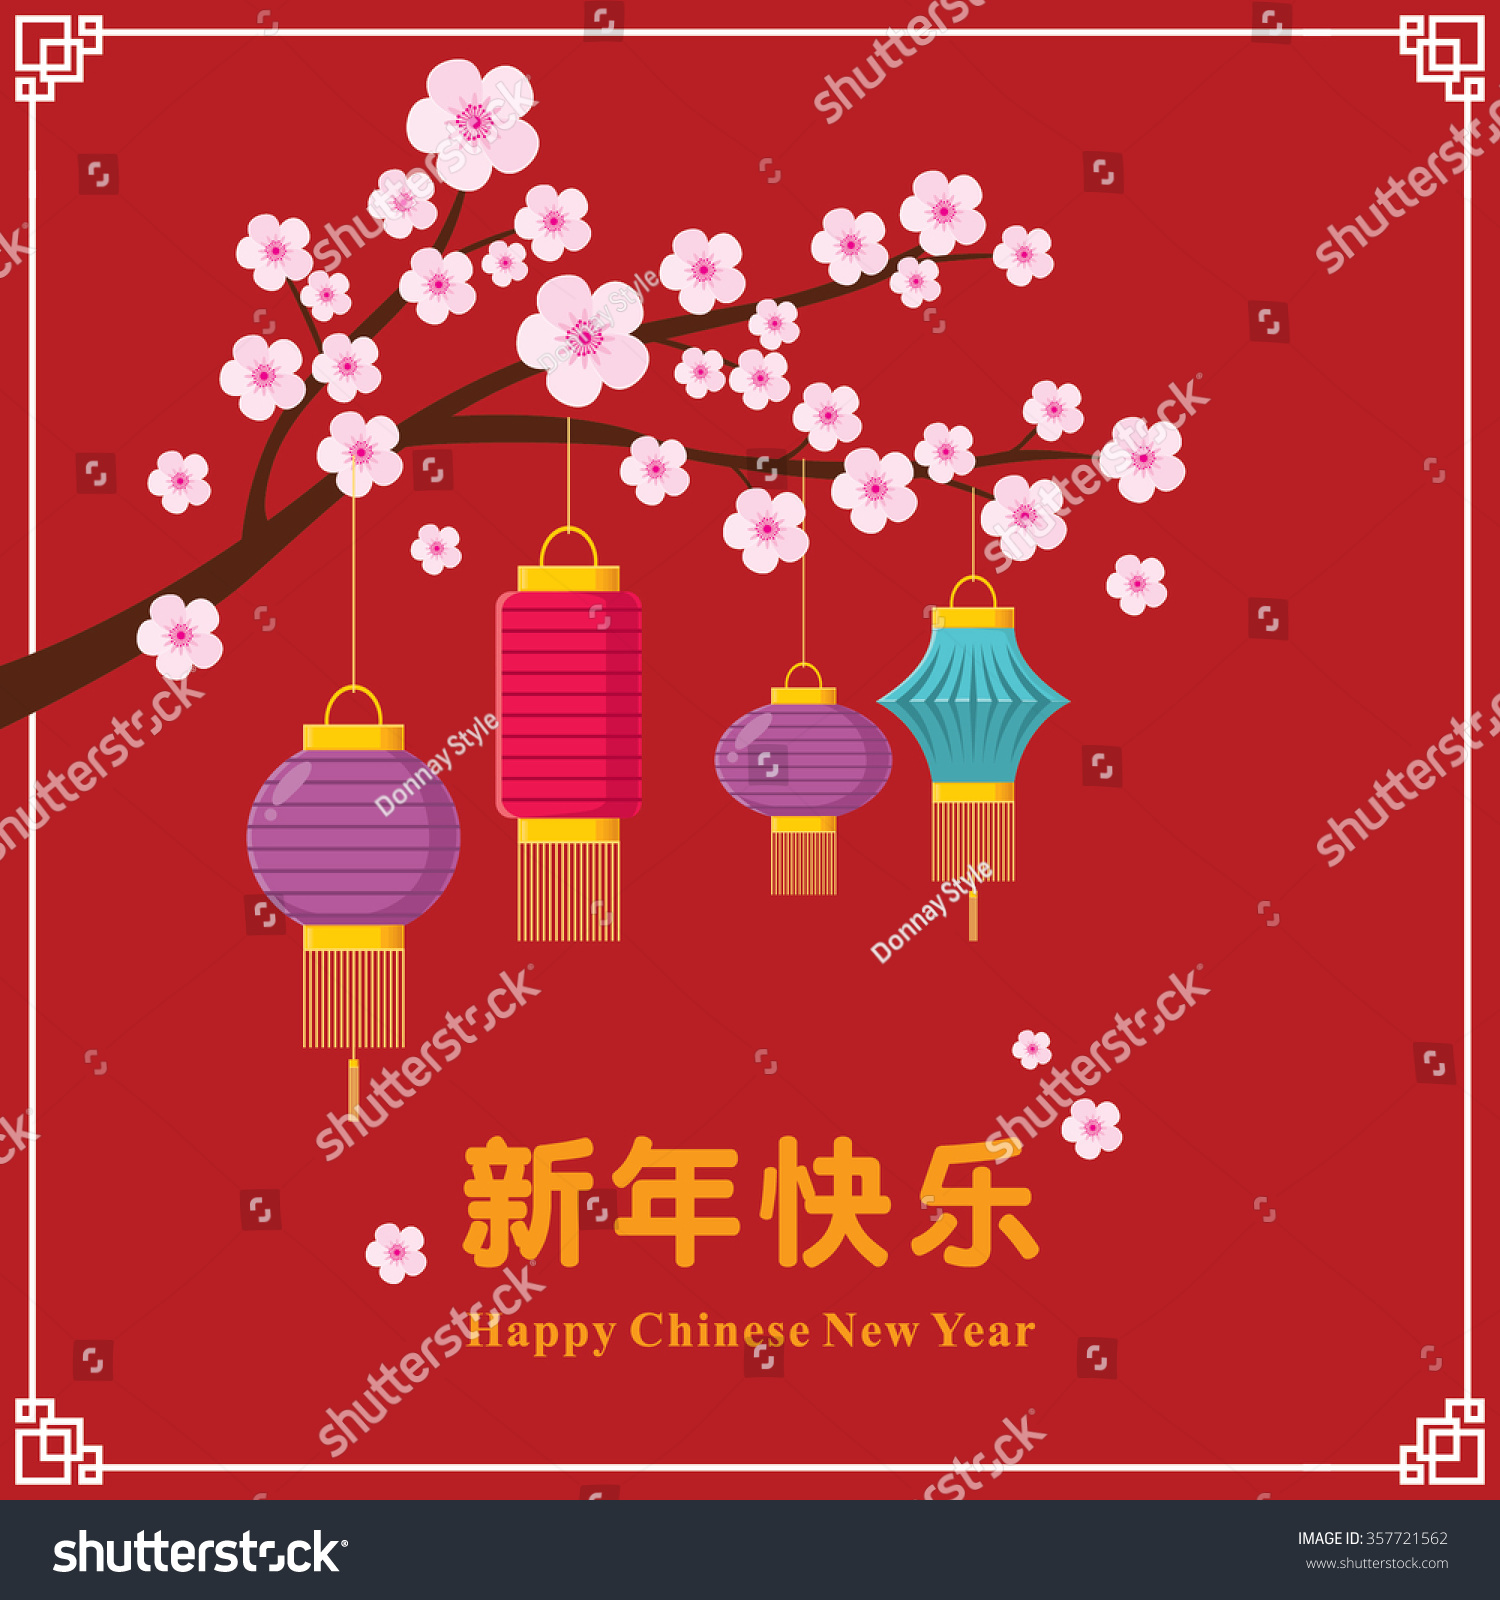 Poster design meaning - Vintage Chinese New Year Poster Design With Plum Blossom Traditional Lantern Chinese Wording Meanings